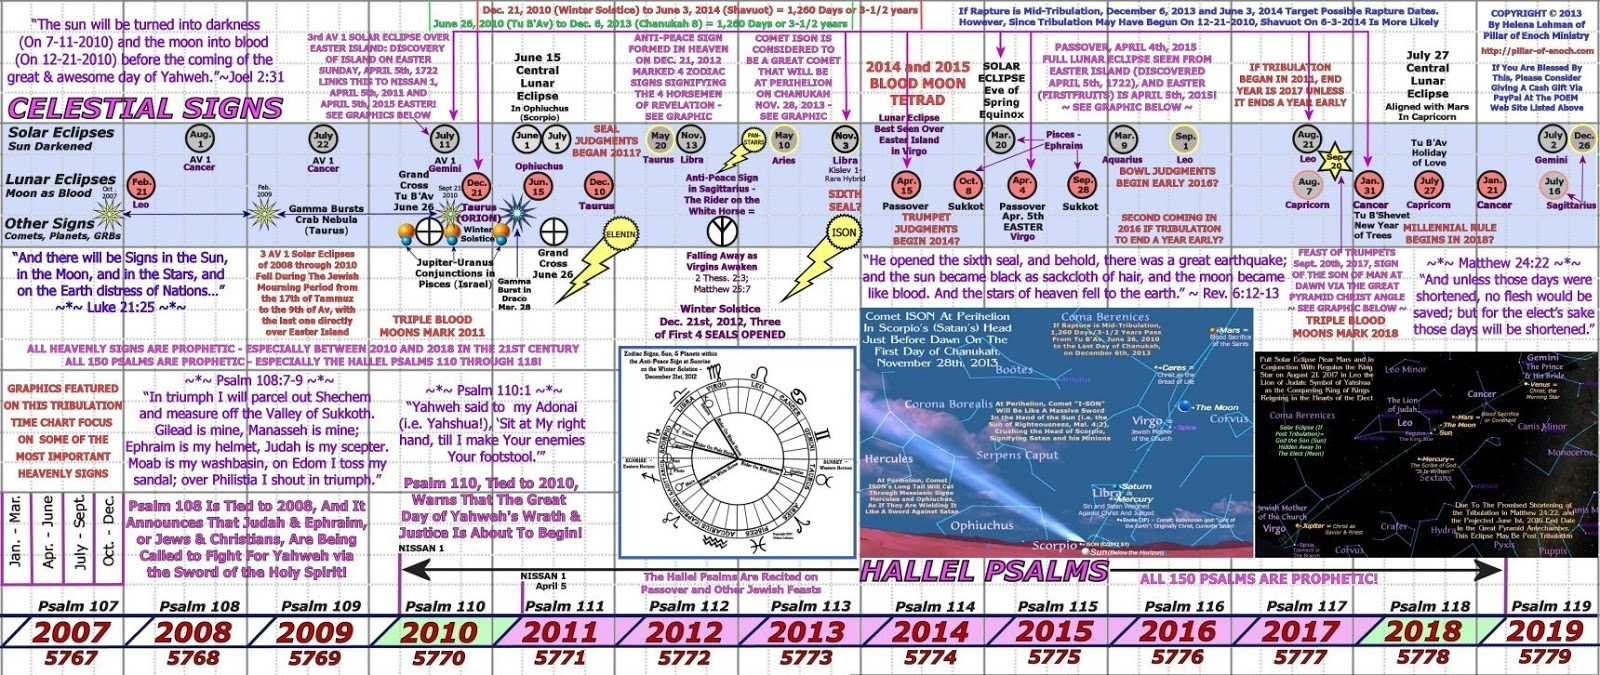 Pillar Of Enoch Ministry Blog: Heavenly Signs That The